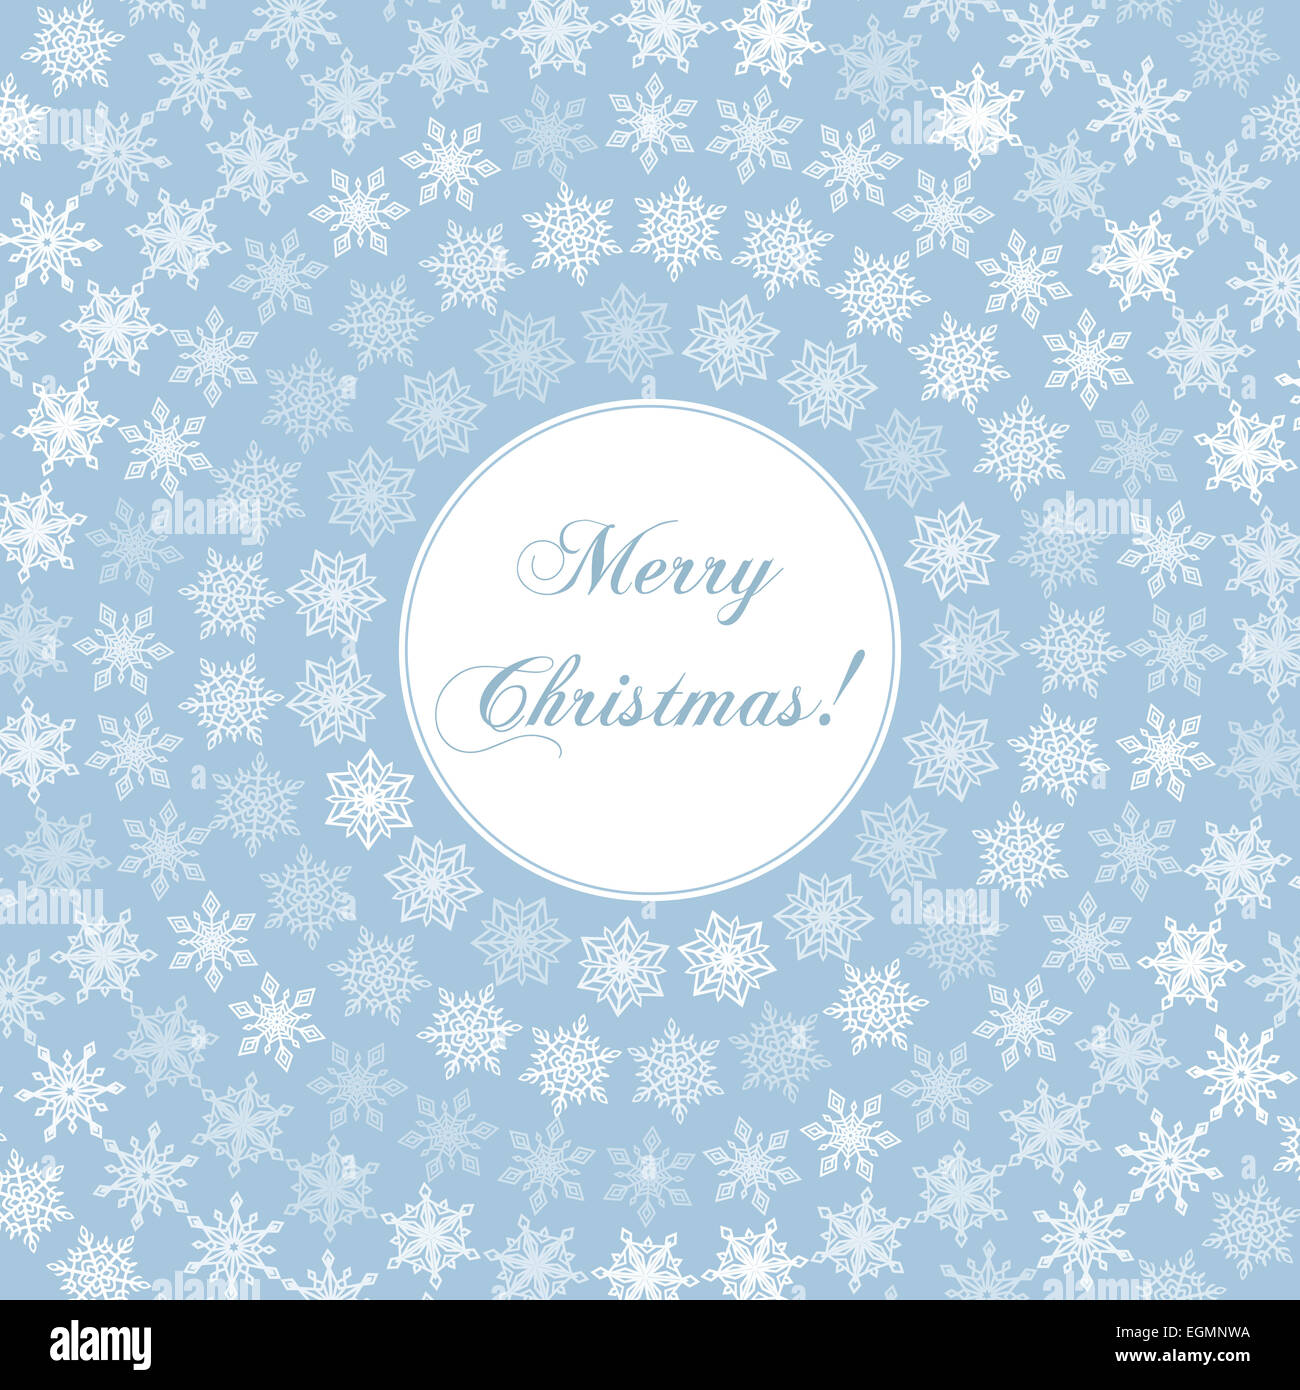 Delicate merry christmas greeting card with words on round and stock delicate merry christmas greeting card with words on round and circular fine white snowflakes on background of vintage pastel blue m4hsunfo